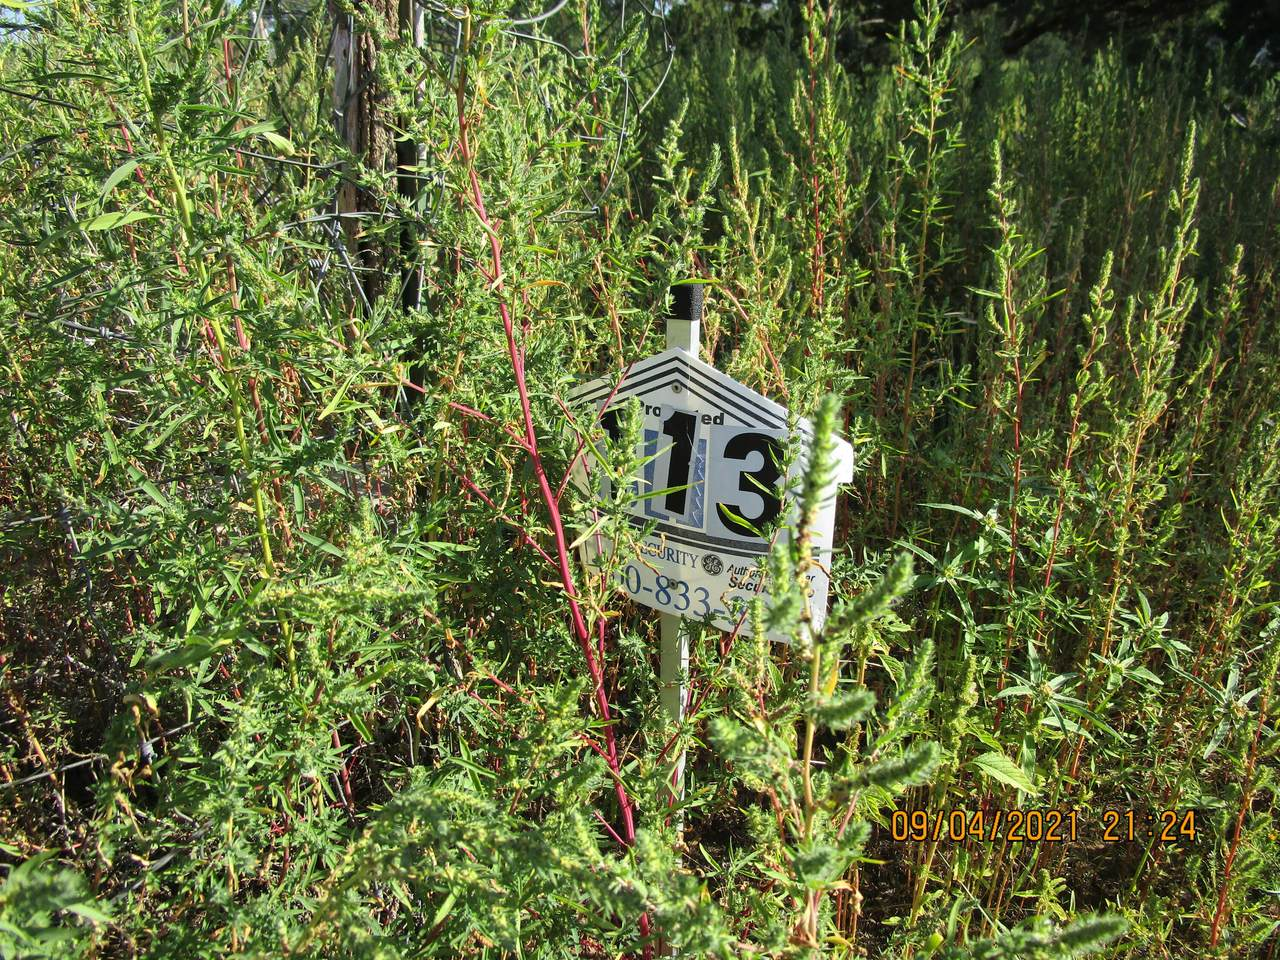 113 4TH OF JULY RD - Photo 1